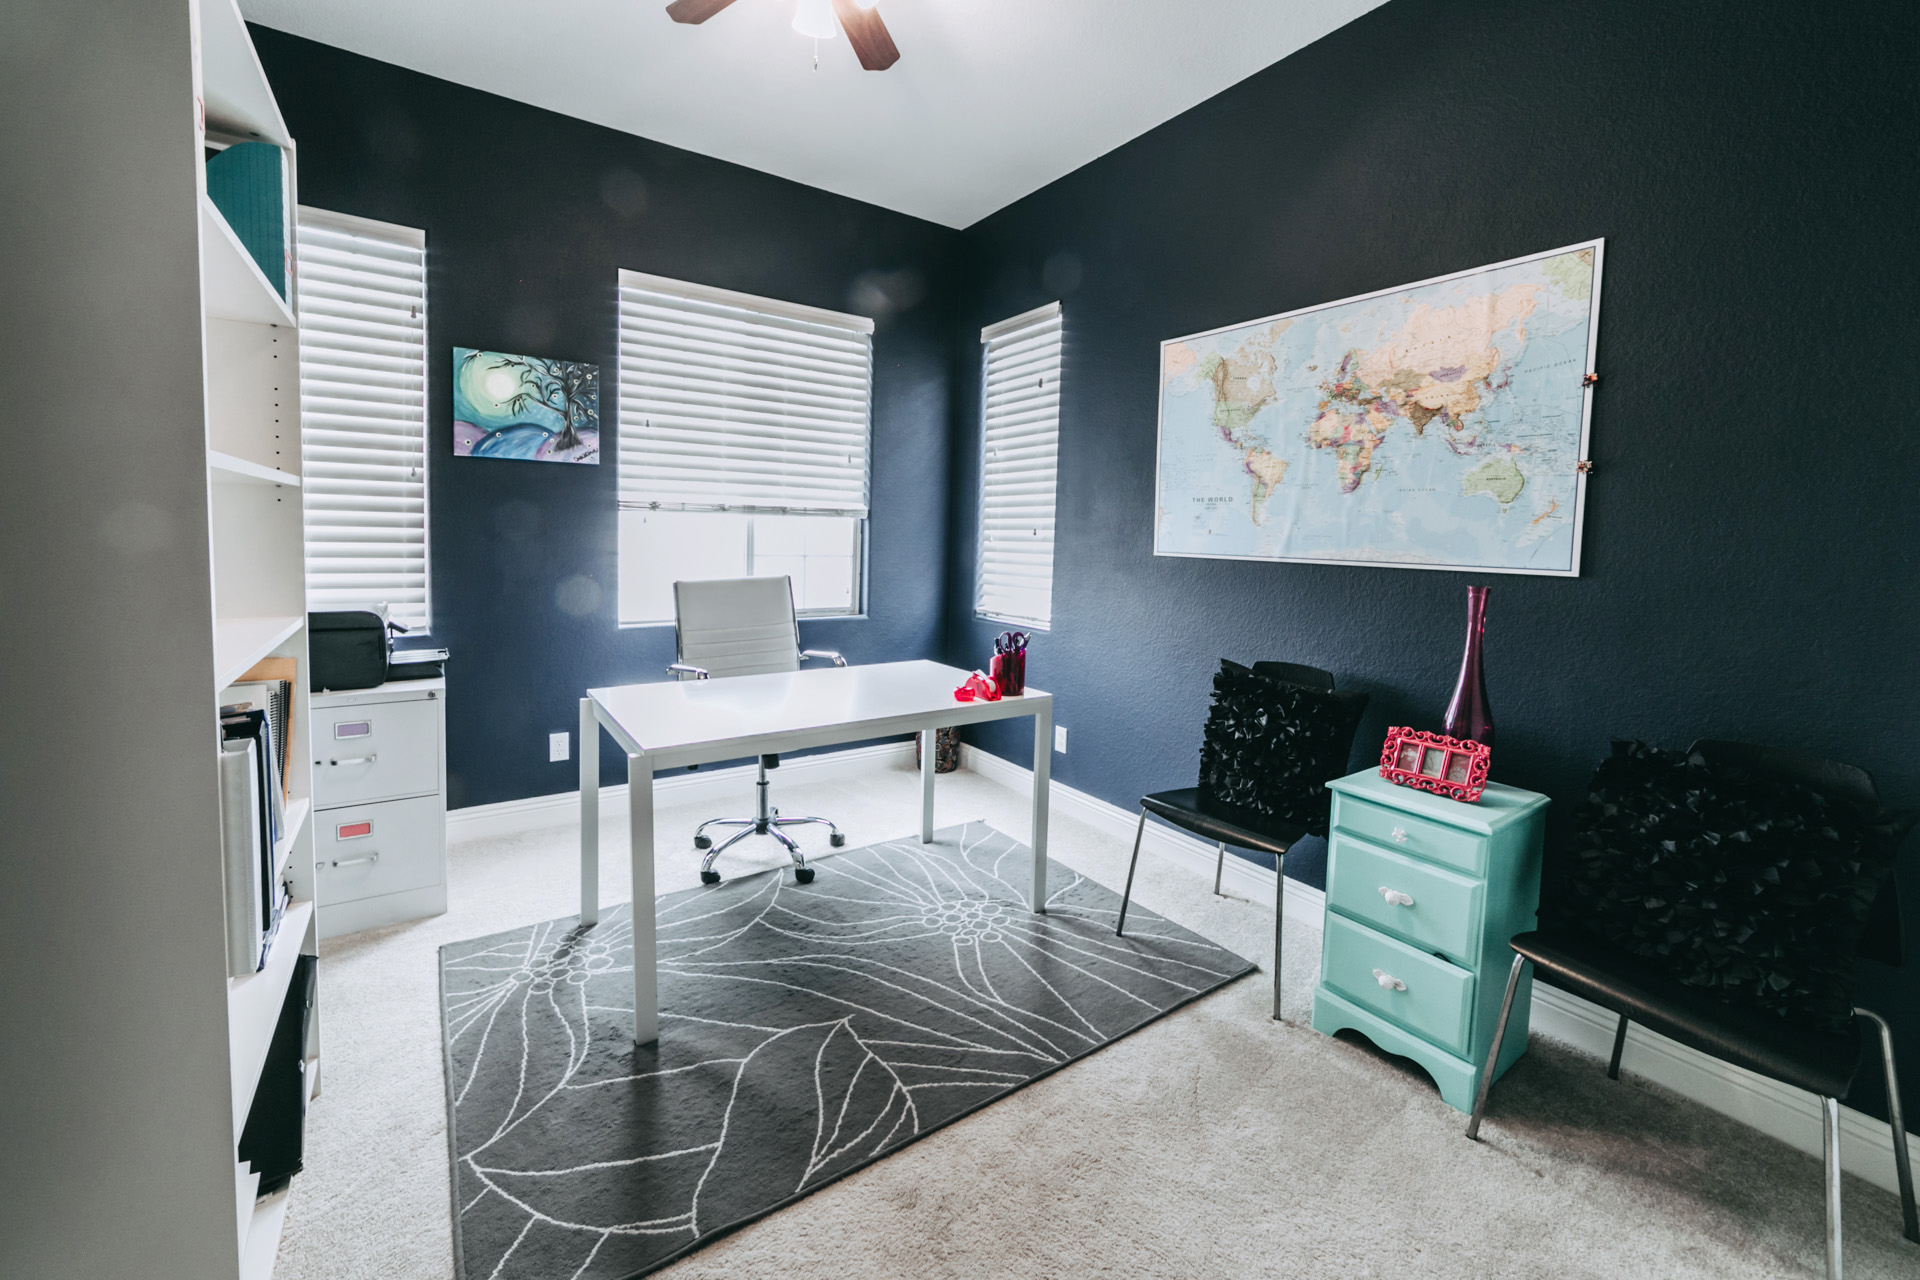 Home office Real Estate pictures. Las Vegas residential home photographs.